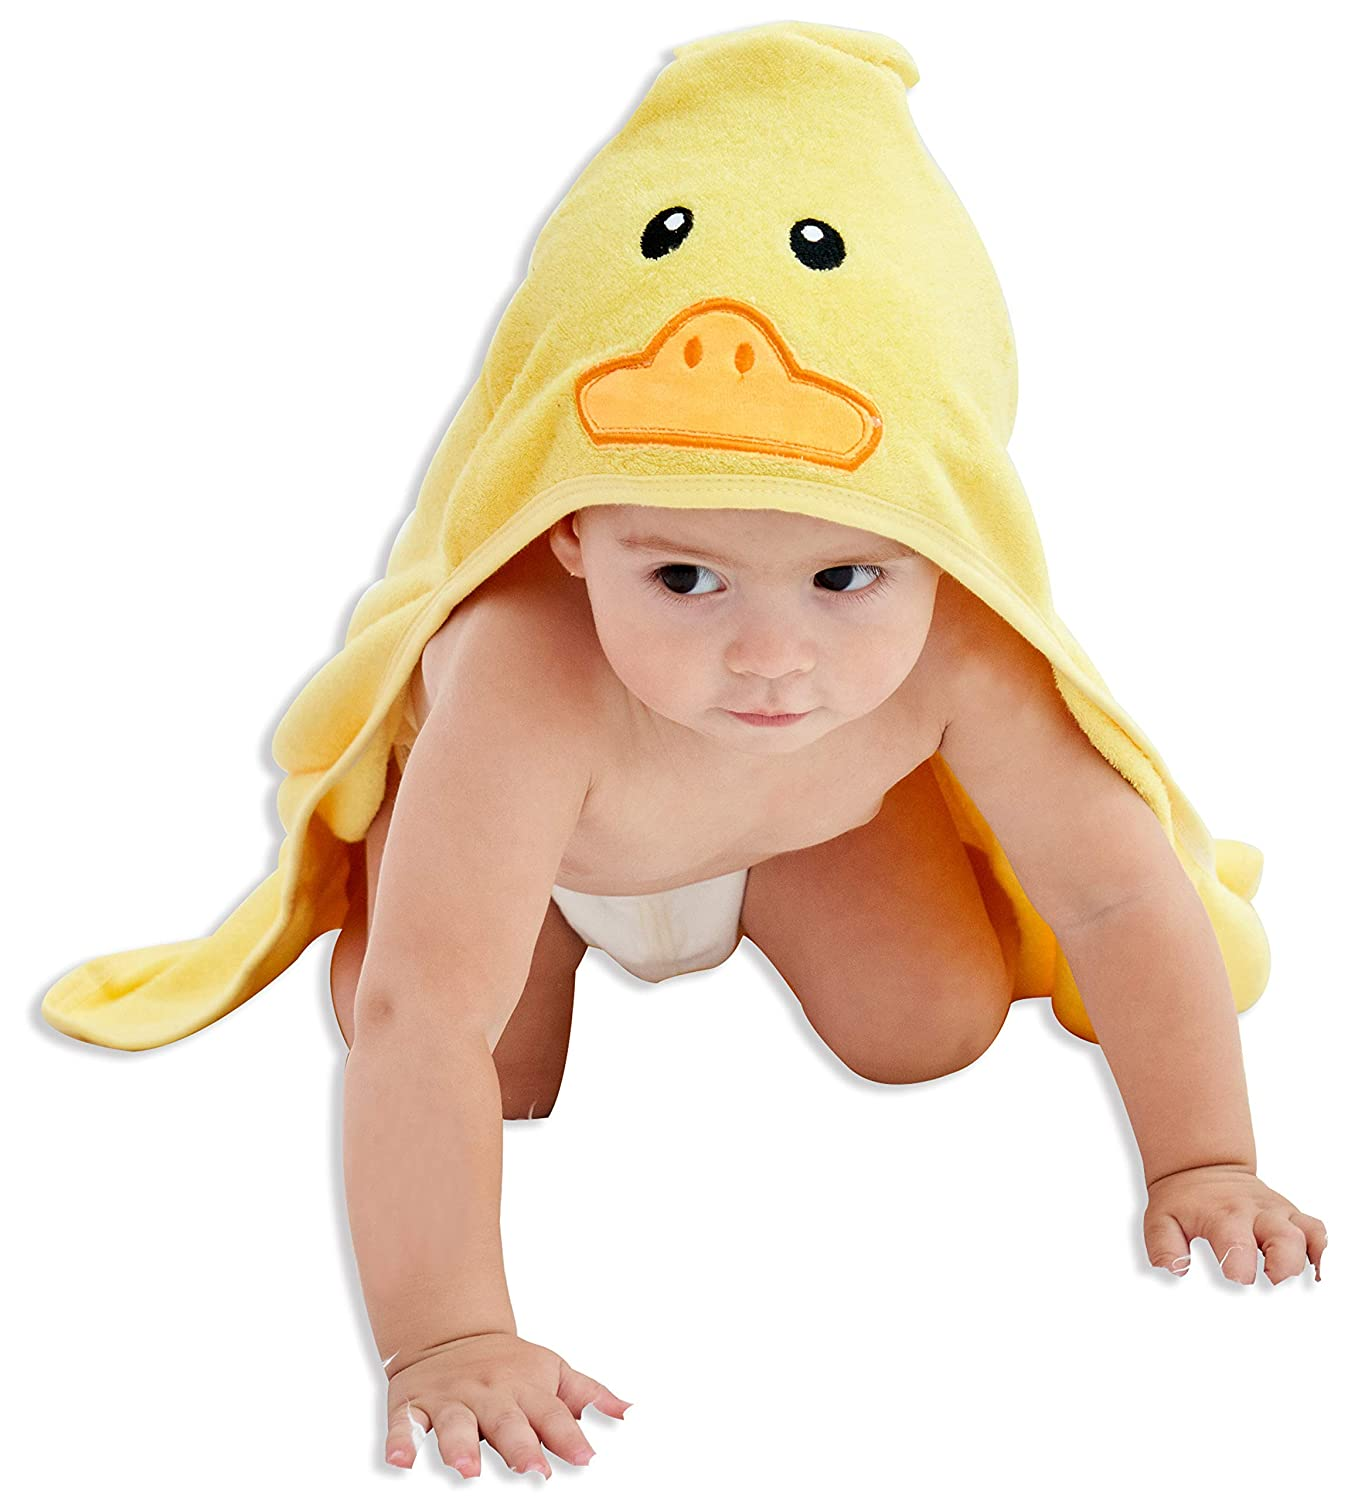 HIPHOP PANDA Bamboo Hooded Baby Towel - Softest Hooded Bath Towel for Babie, Toddler,Infant, Perfect for Boy and Girl - (Yellow Duck, 30 x 30 Inch)